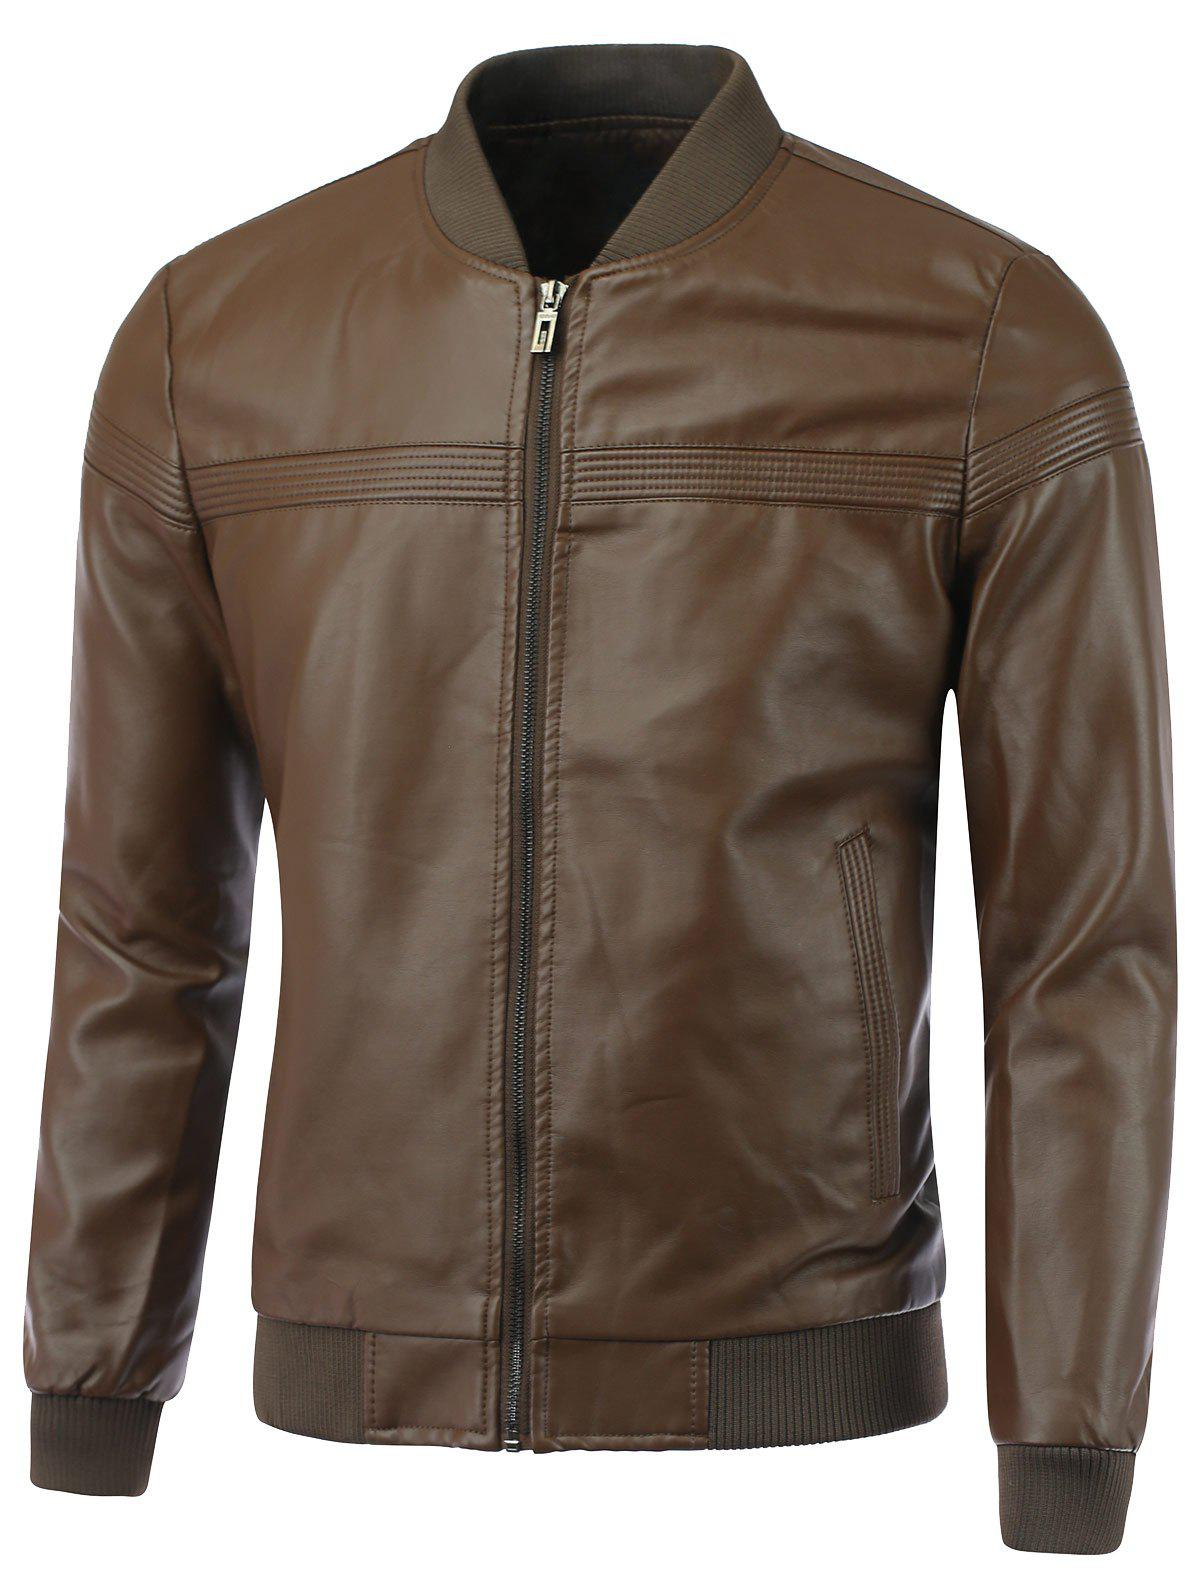 Rib épissage stand Collar Causal Zip-Up PU-Veste en cuir - café XL